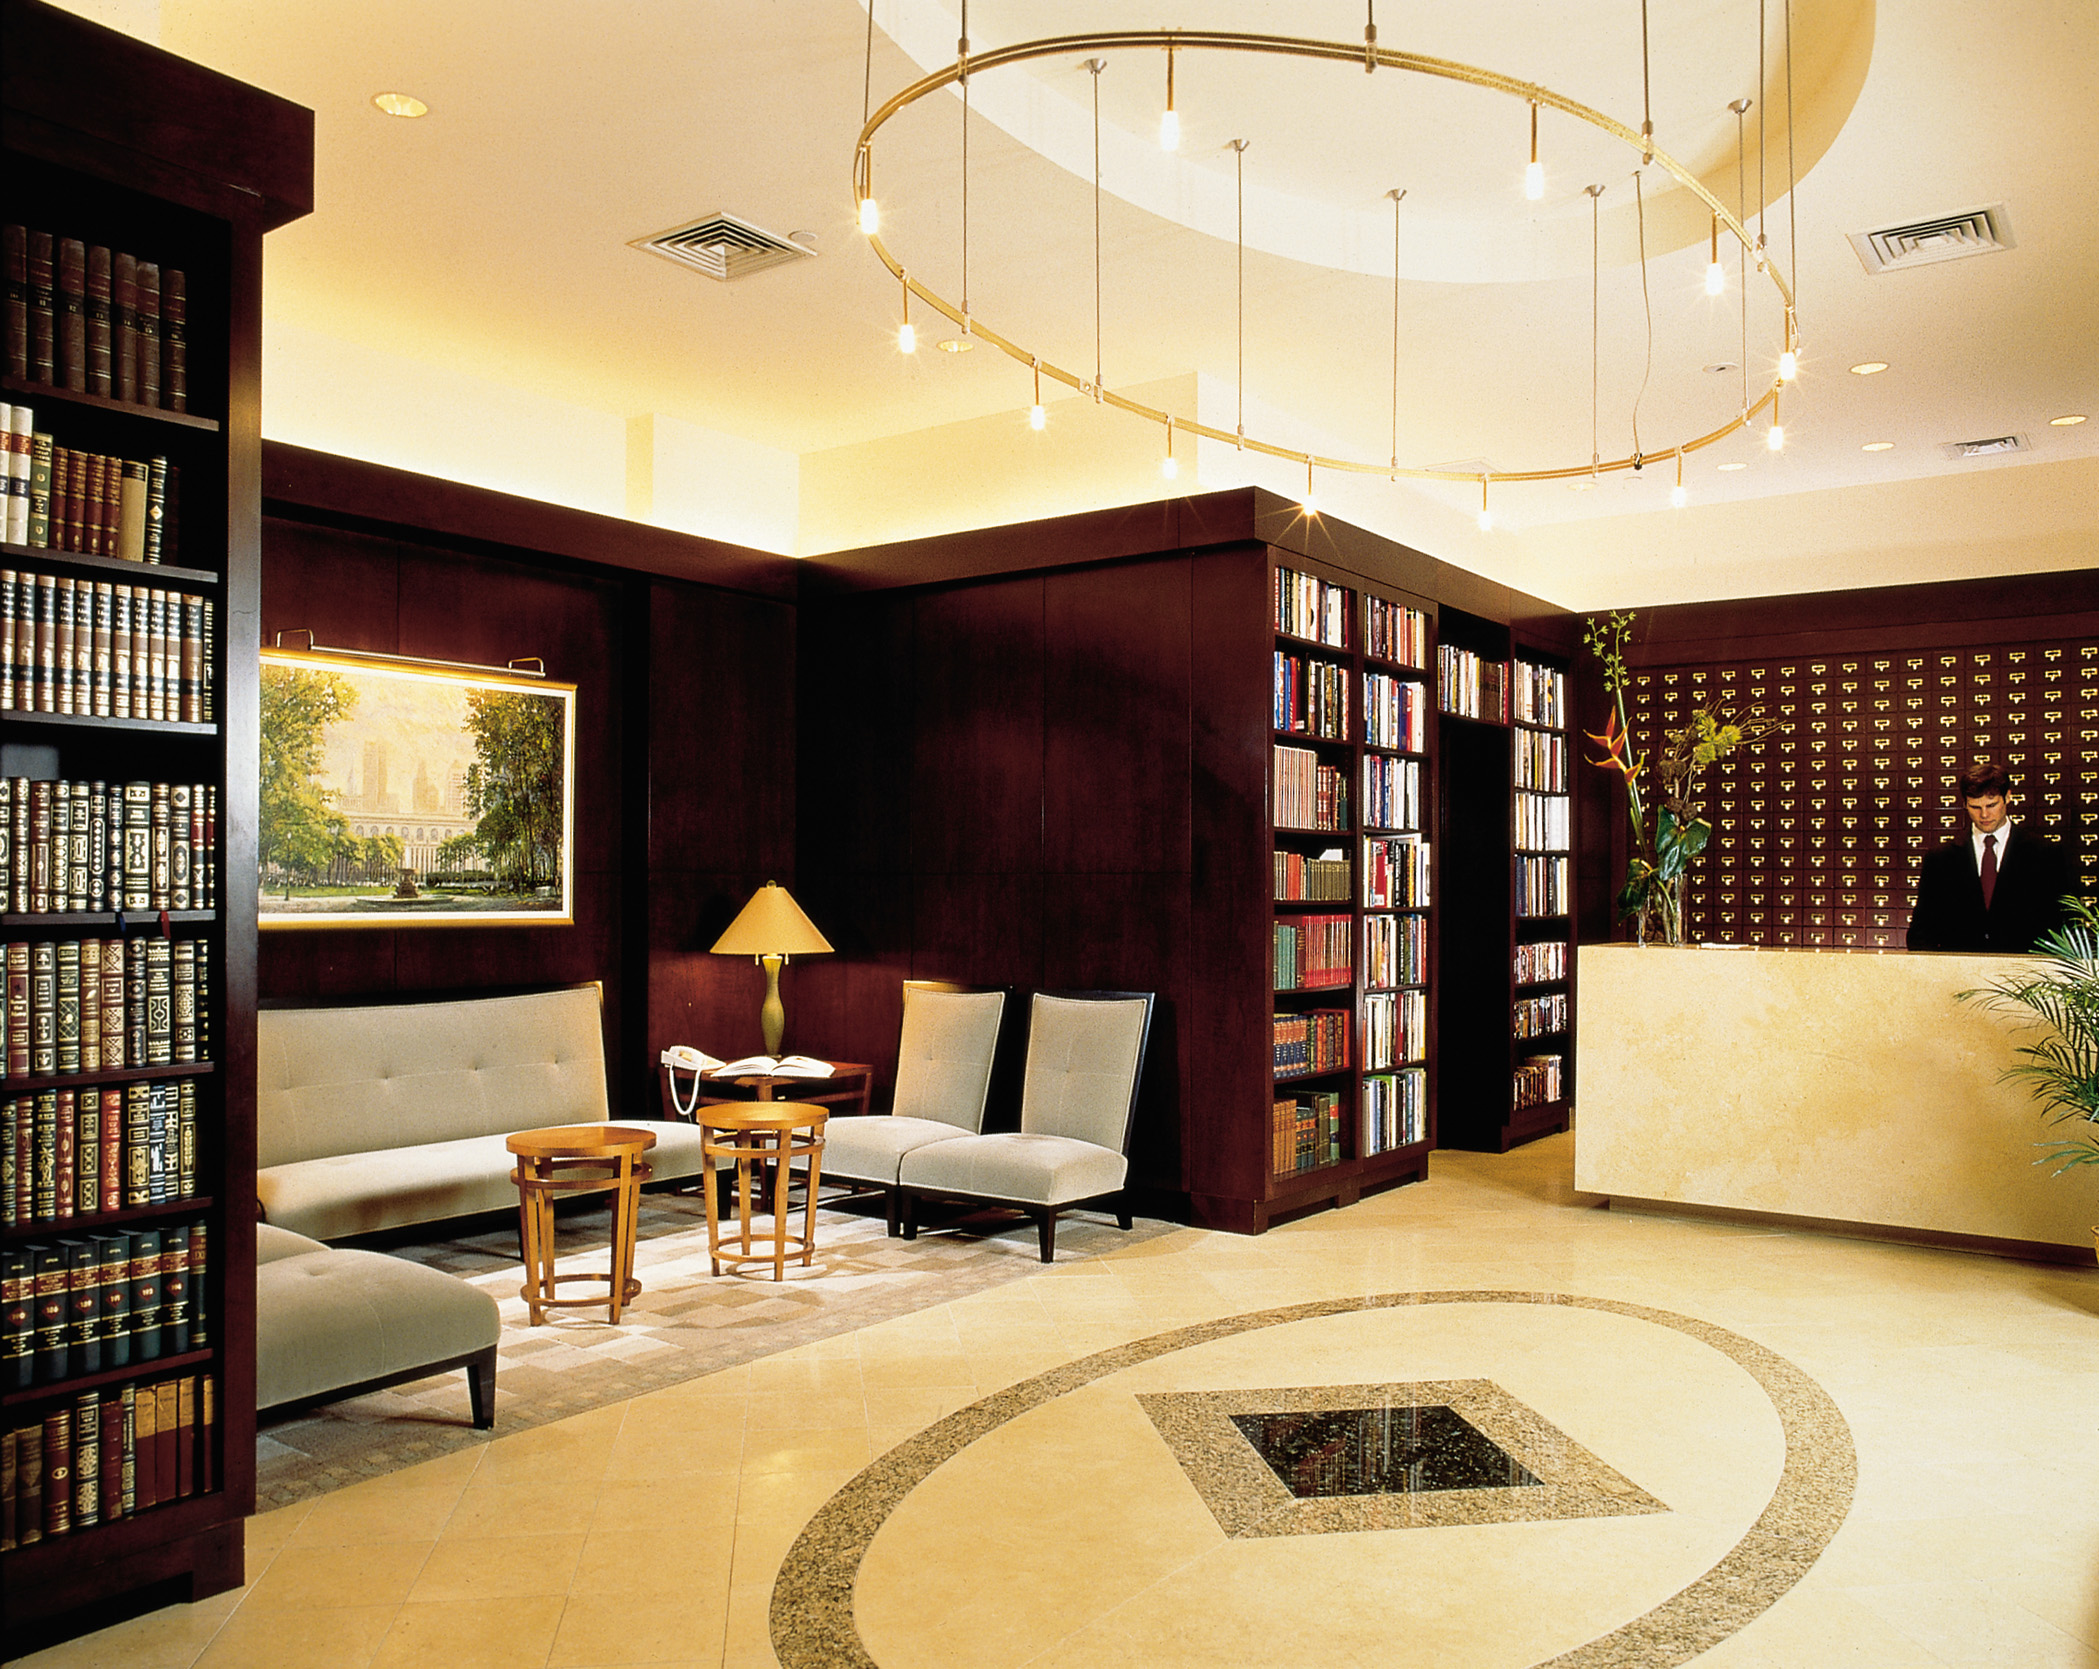 Spa Nevers New York City 39s Library Hotel Promises You 39ll Quotnever Go To